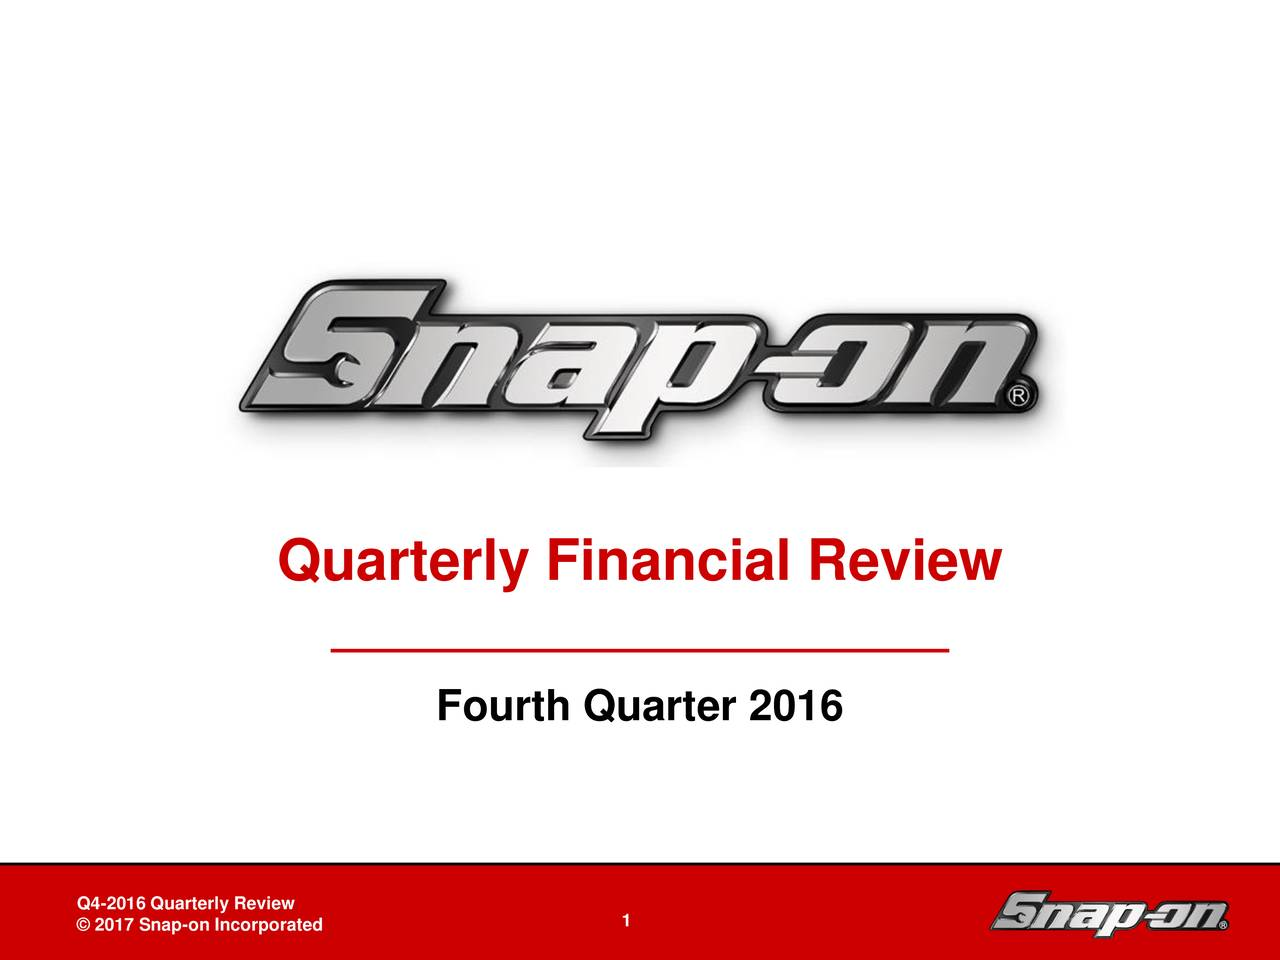 Fourth Quarter 2016 Snap-on Tools In-Depth Business Review Board of Directorsy Review DB-2 - 1 1April 27, 2011on Incorporated 1